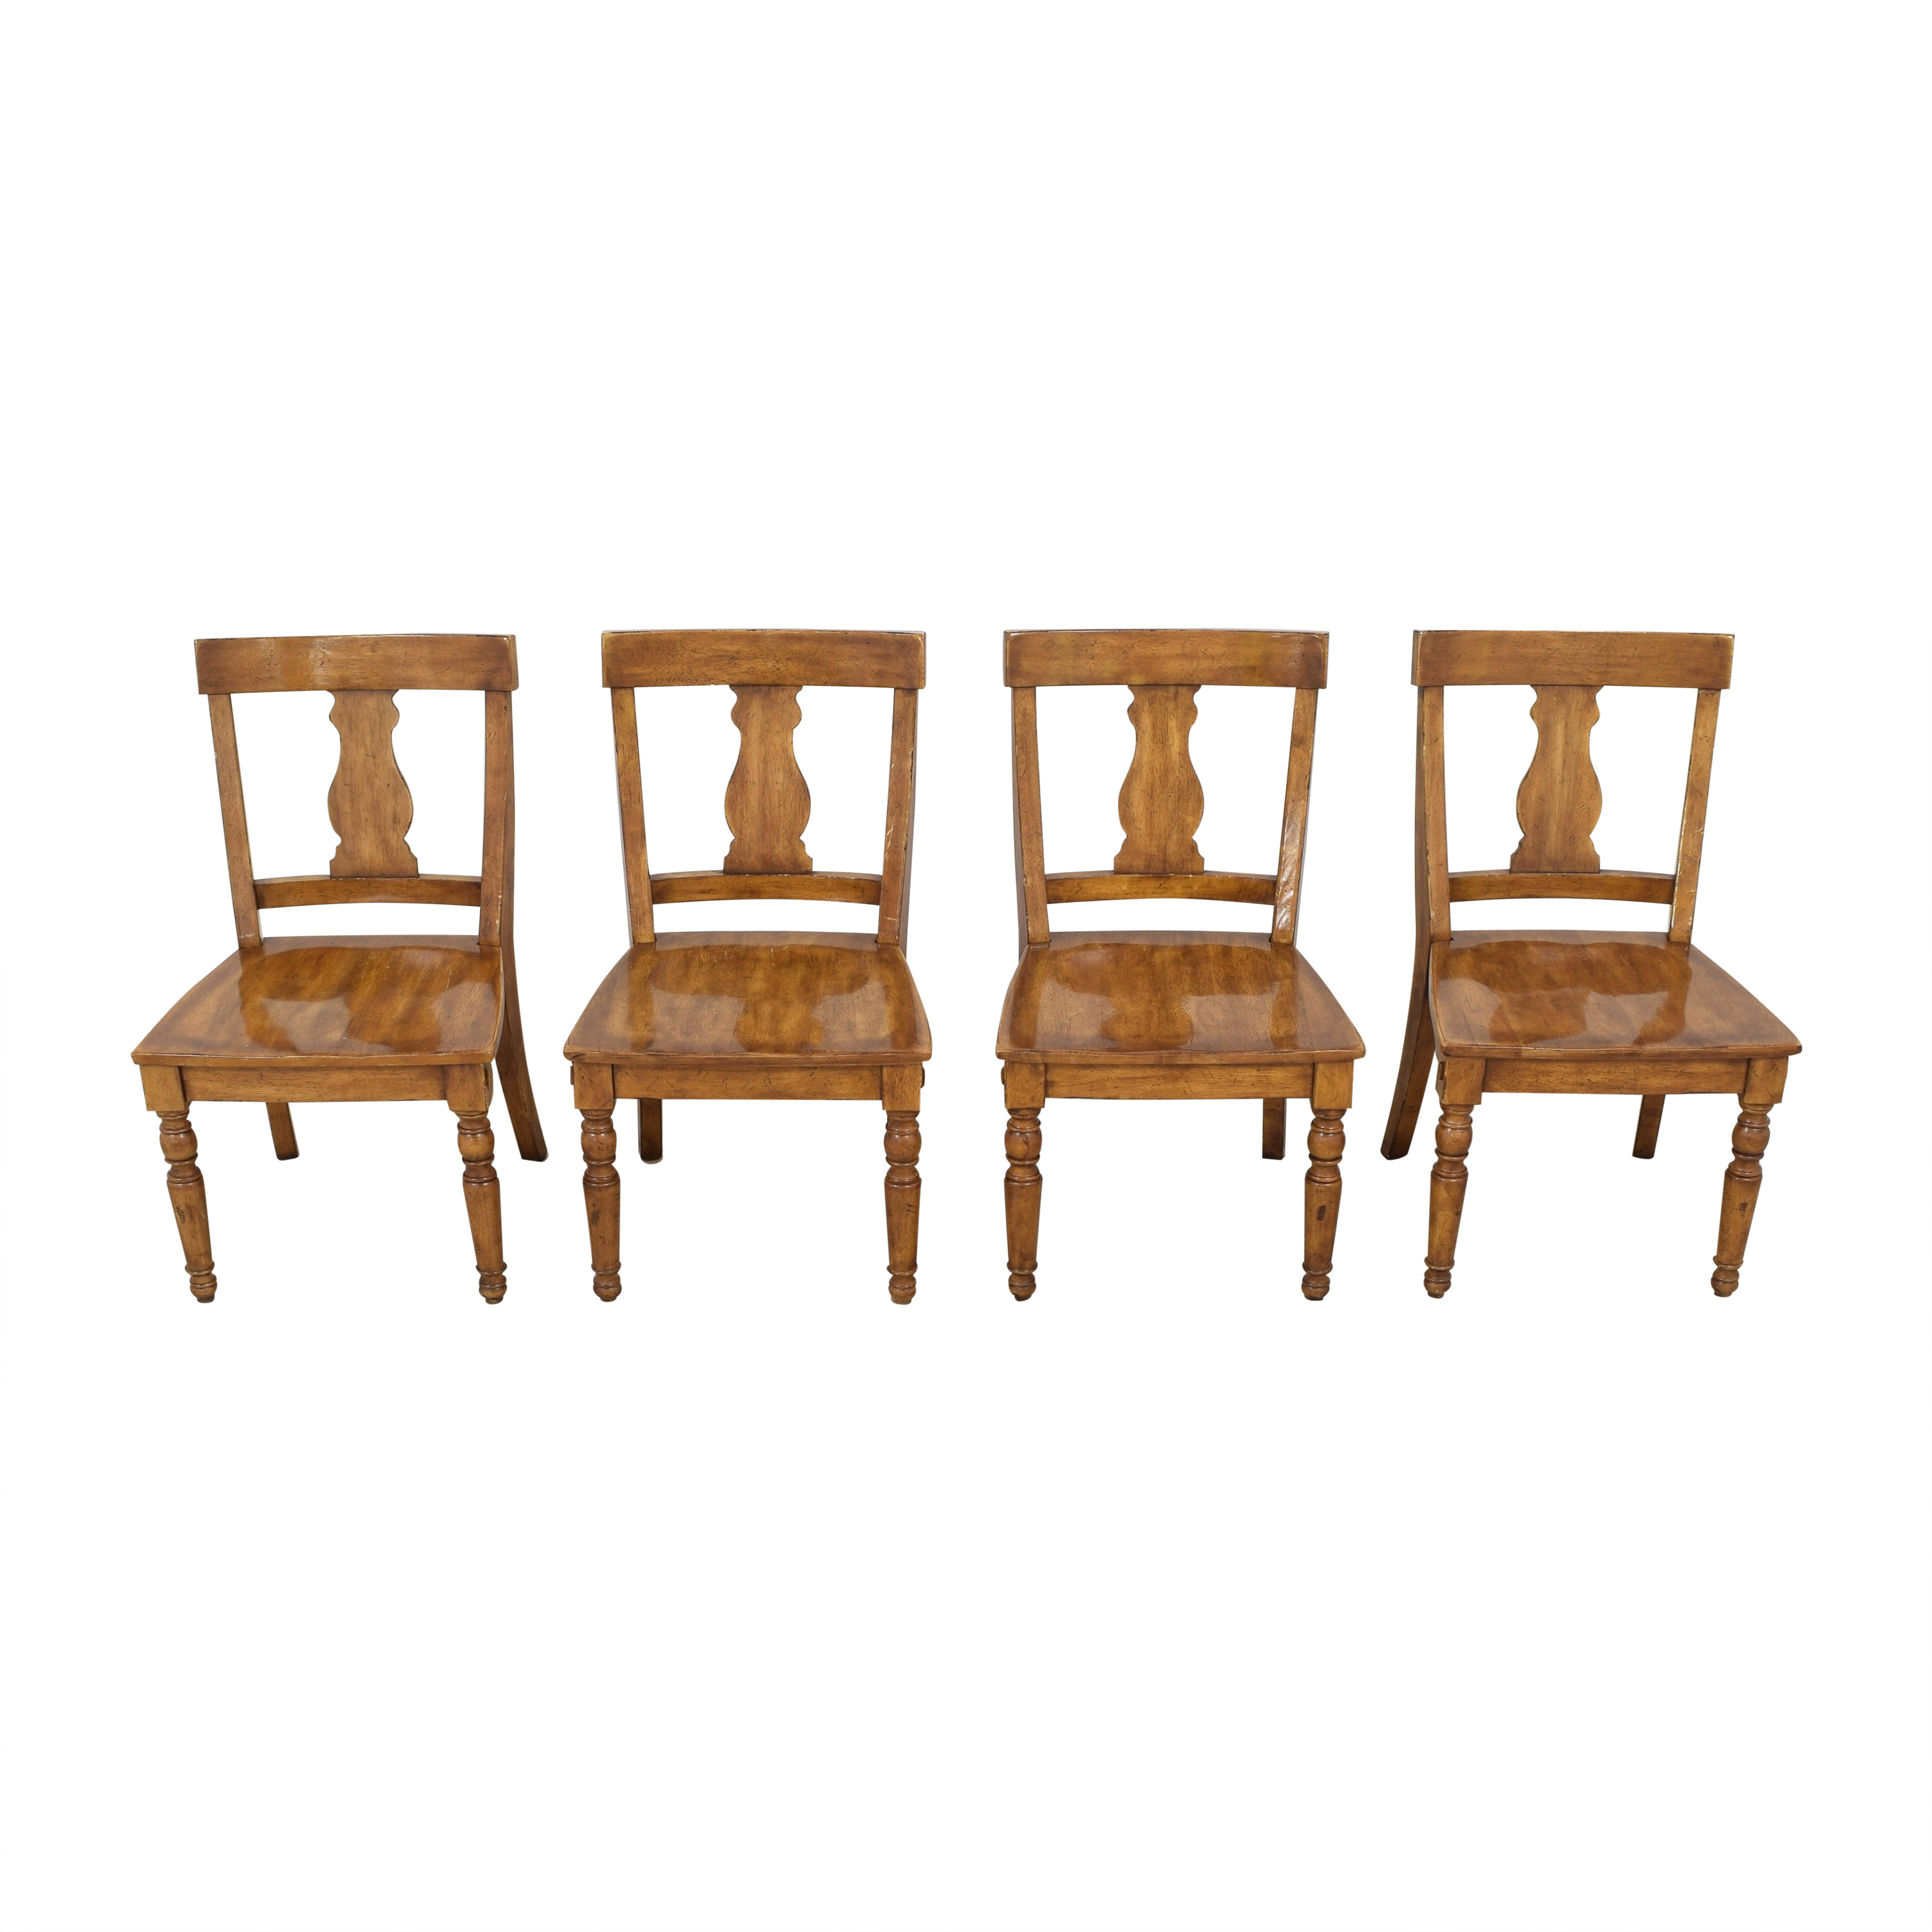 shop Pottery Barn Dining Chairs Pottery Barn Chairs